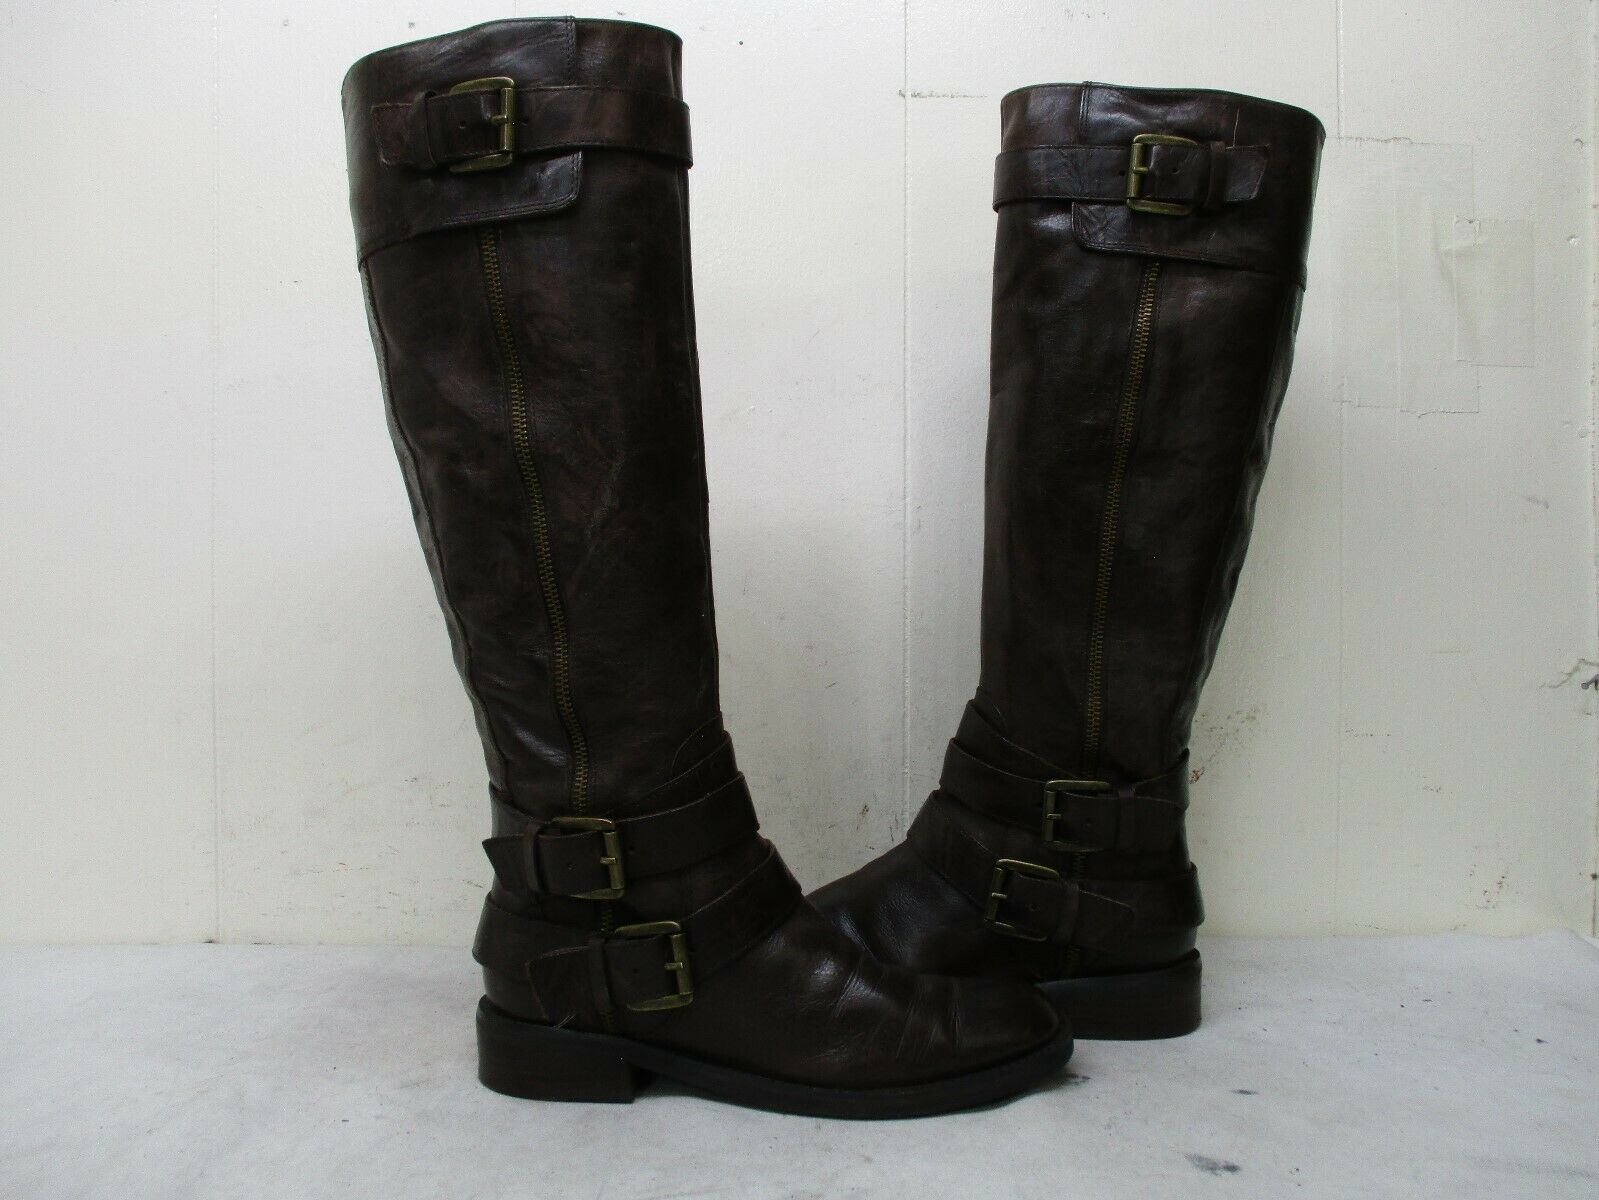 Enzo Angiolini Saylem Brown Leather Knee High Riding Boots Womens Size 6.5 M